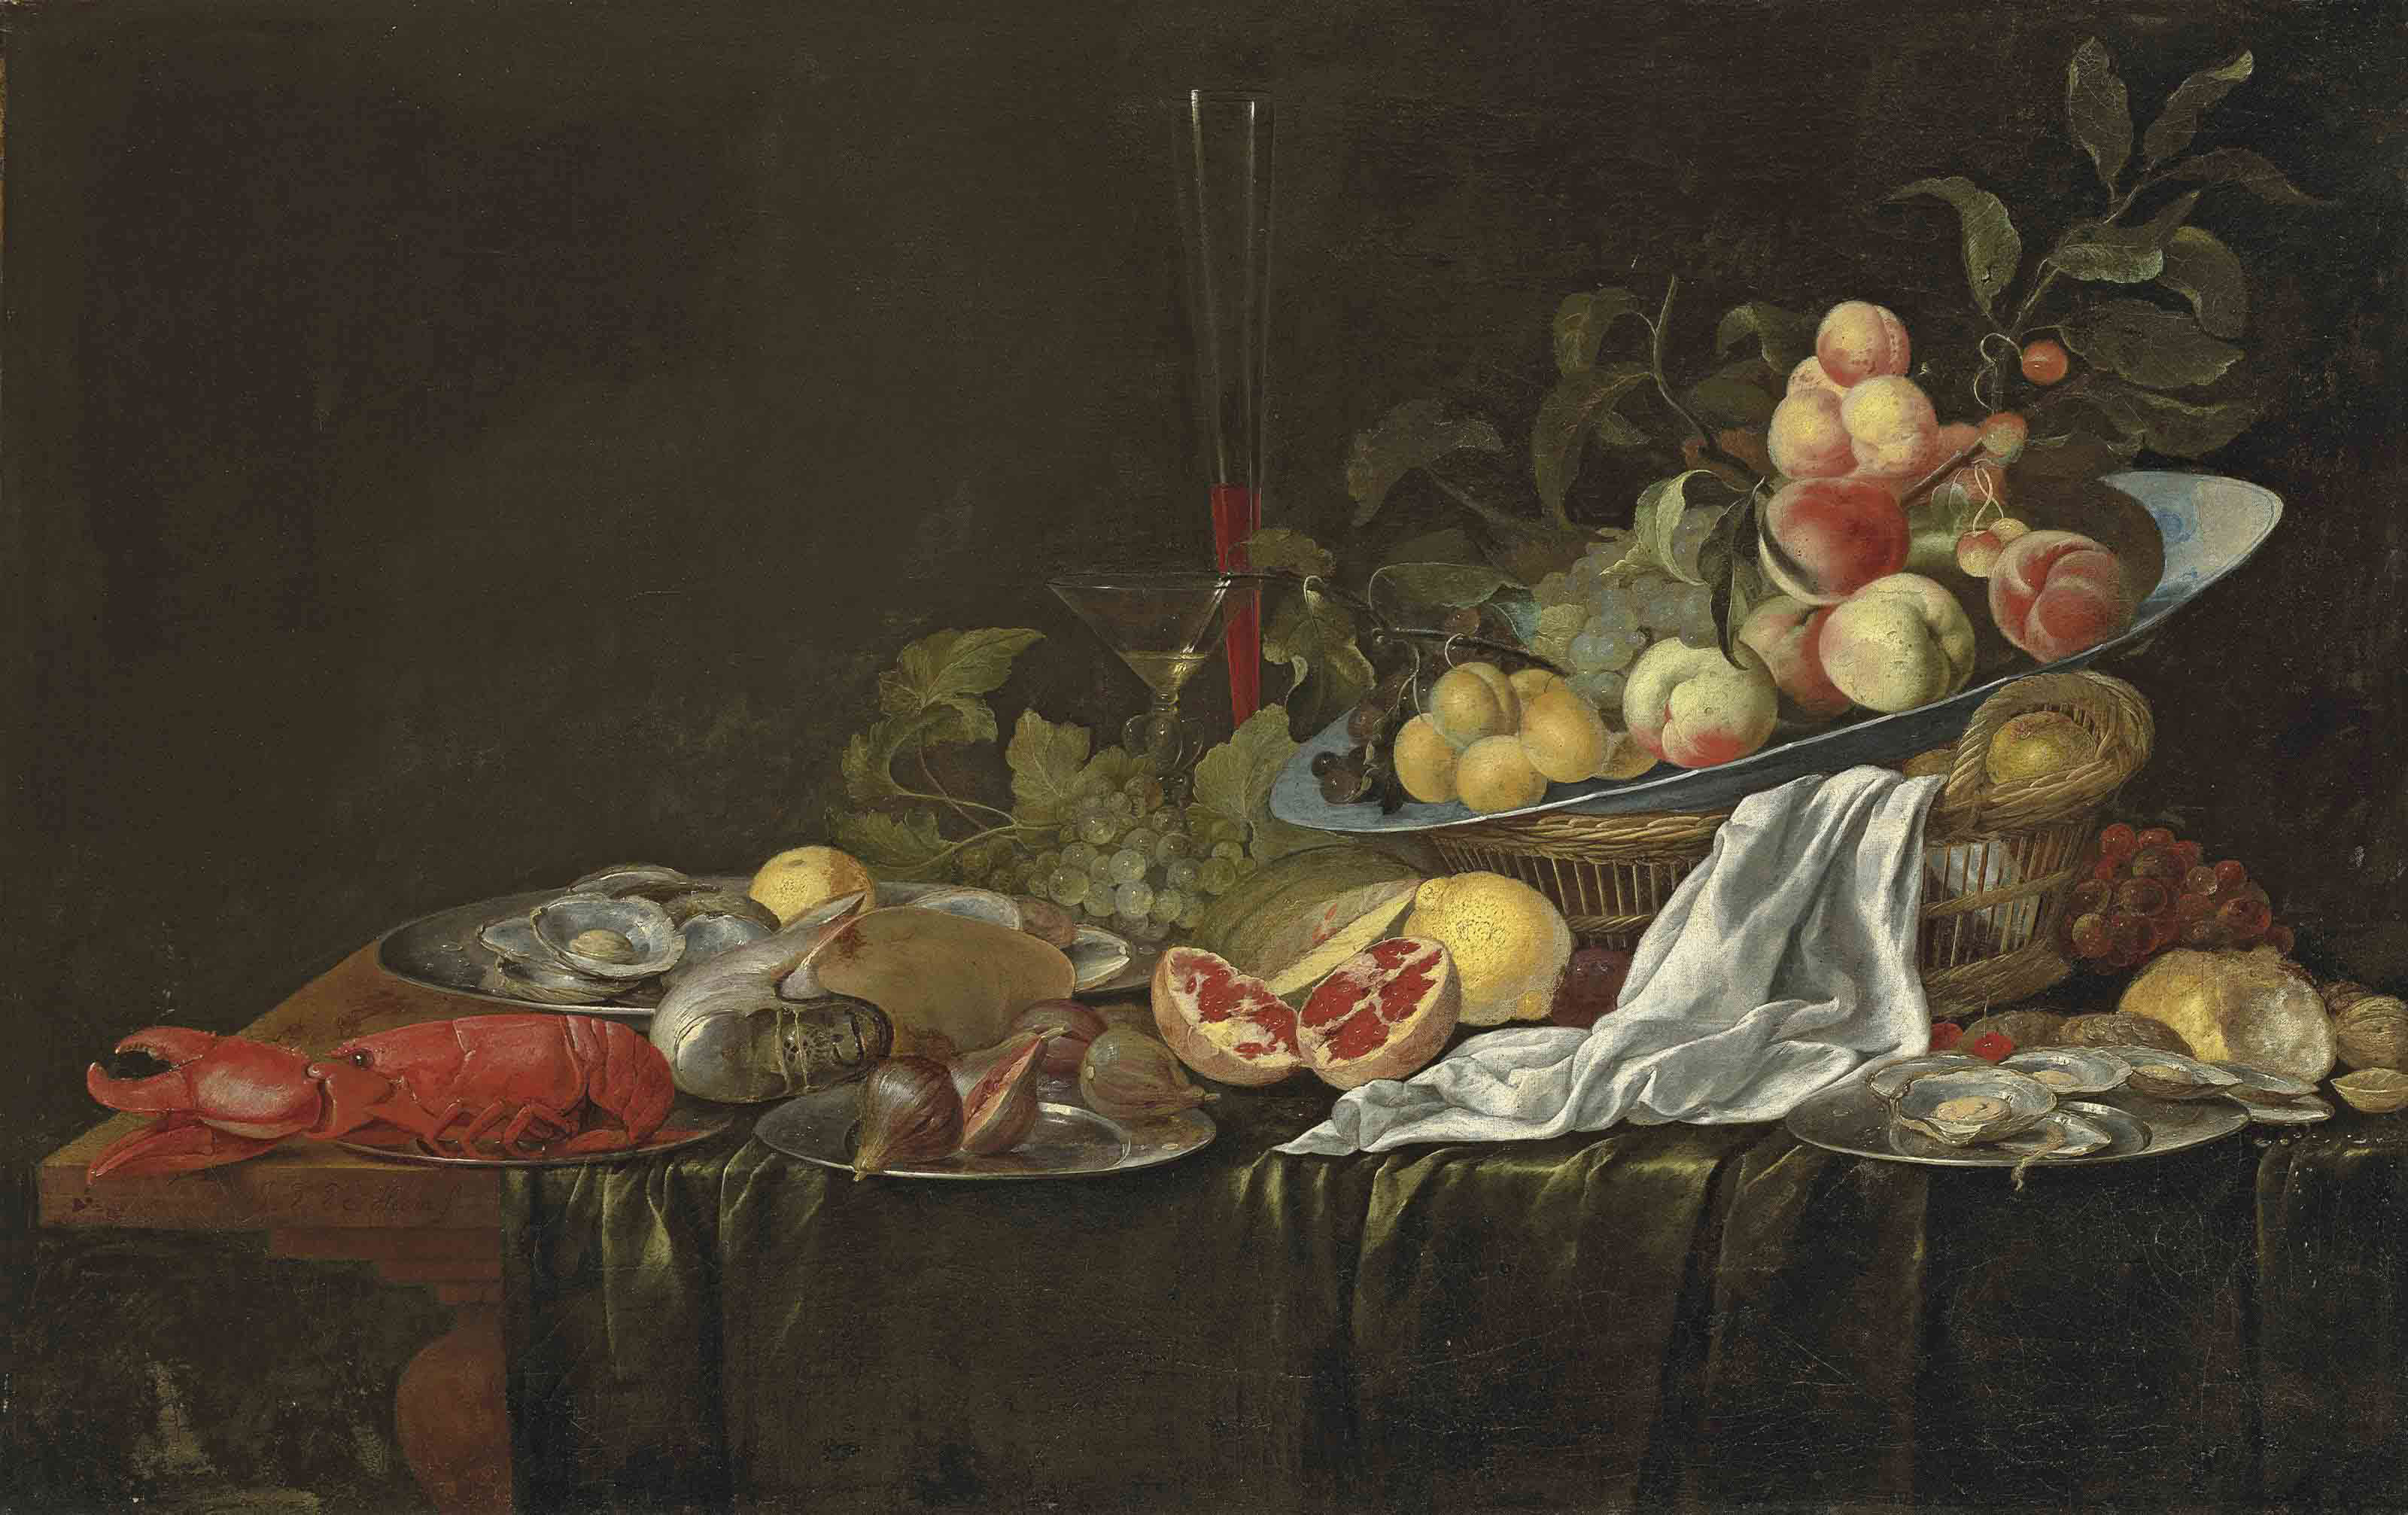 A lobster, a nautilus, figs, oysters, a split pomegranate, a porcelain bowl with plums, peaches and grapes in a basket, glasses and a white cloth, on a partly draped wooden table